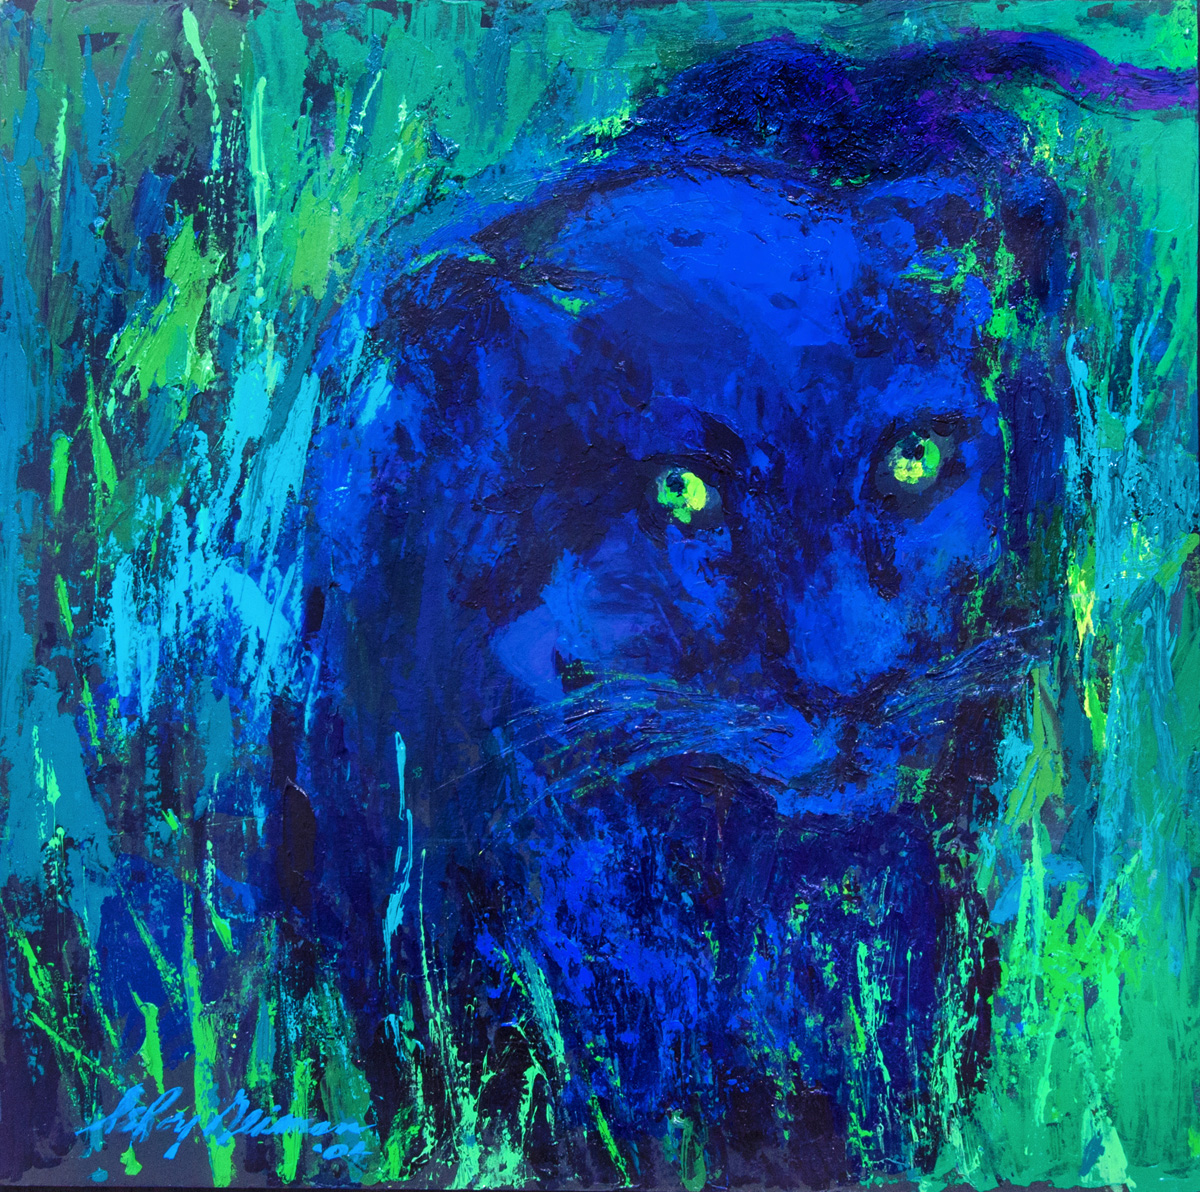 Portrait of the Black Panther, acrylic and enamel on board, 20 x 20.5 in., 2001